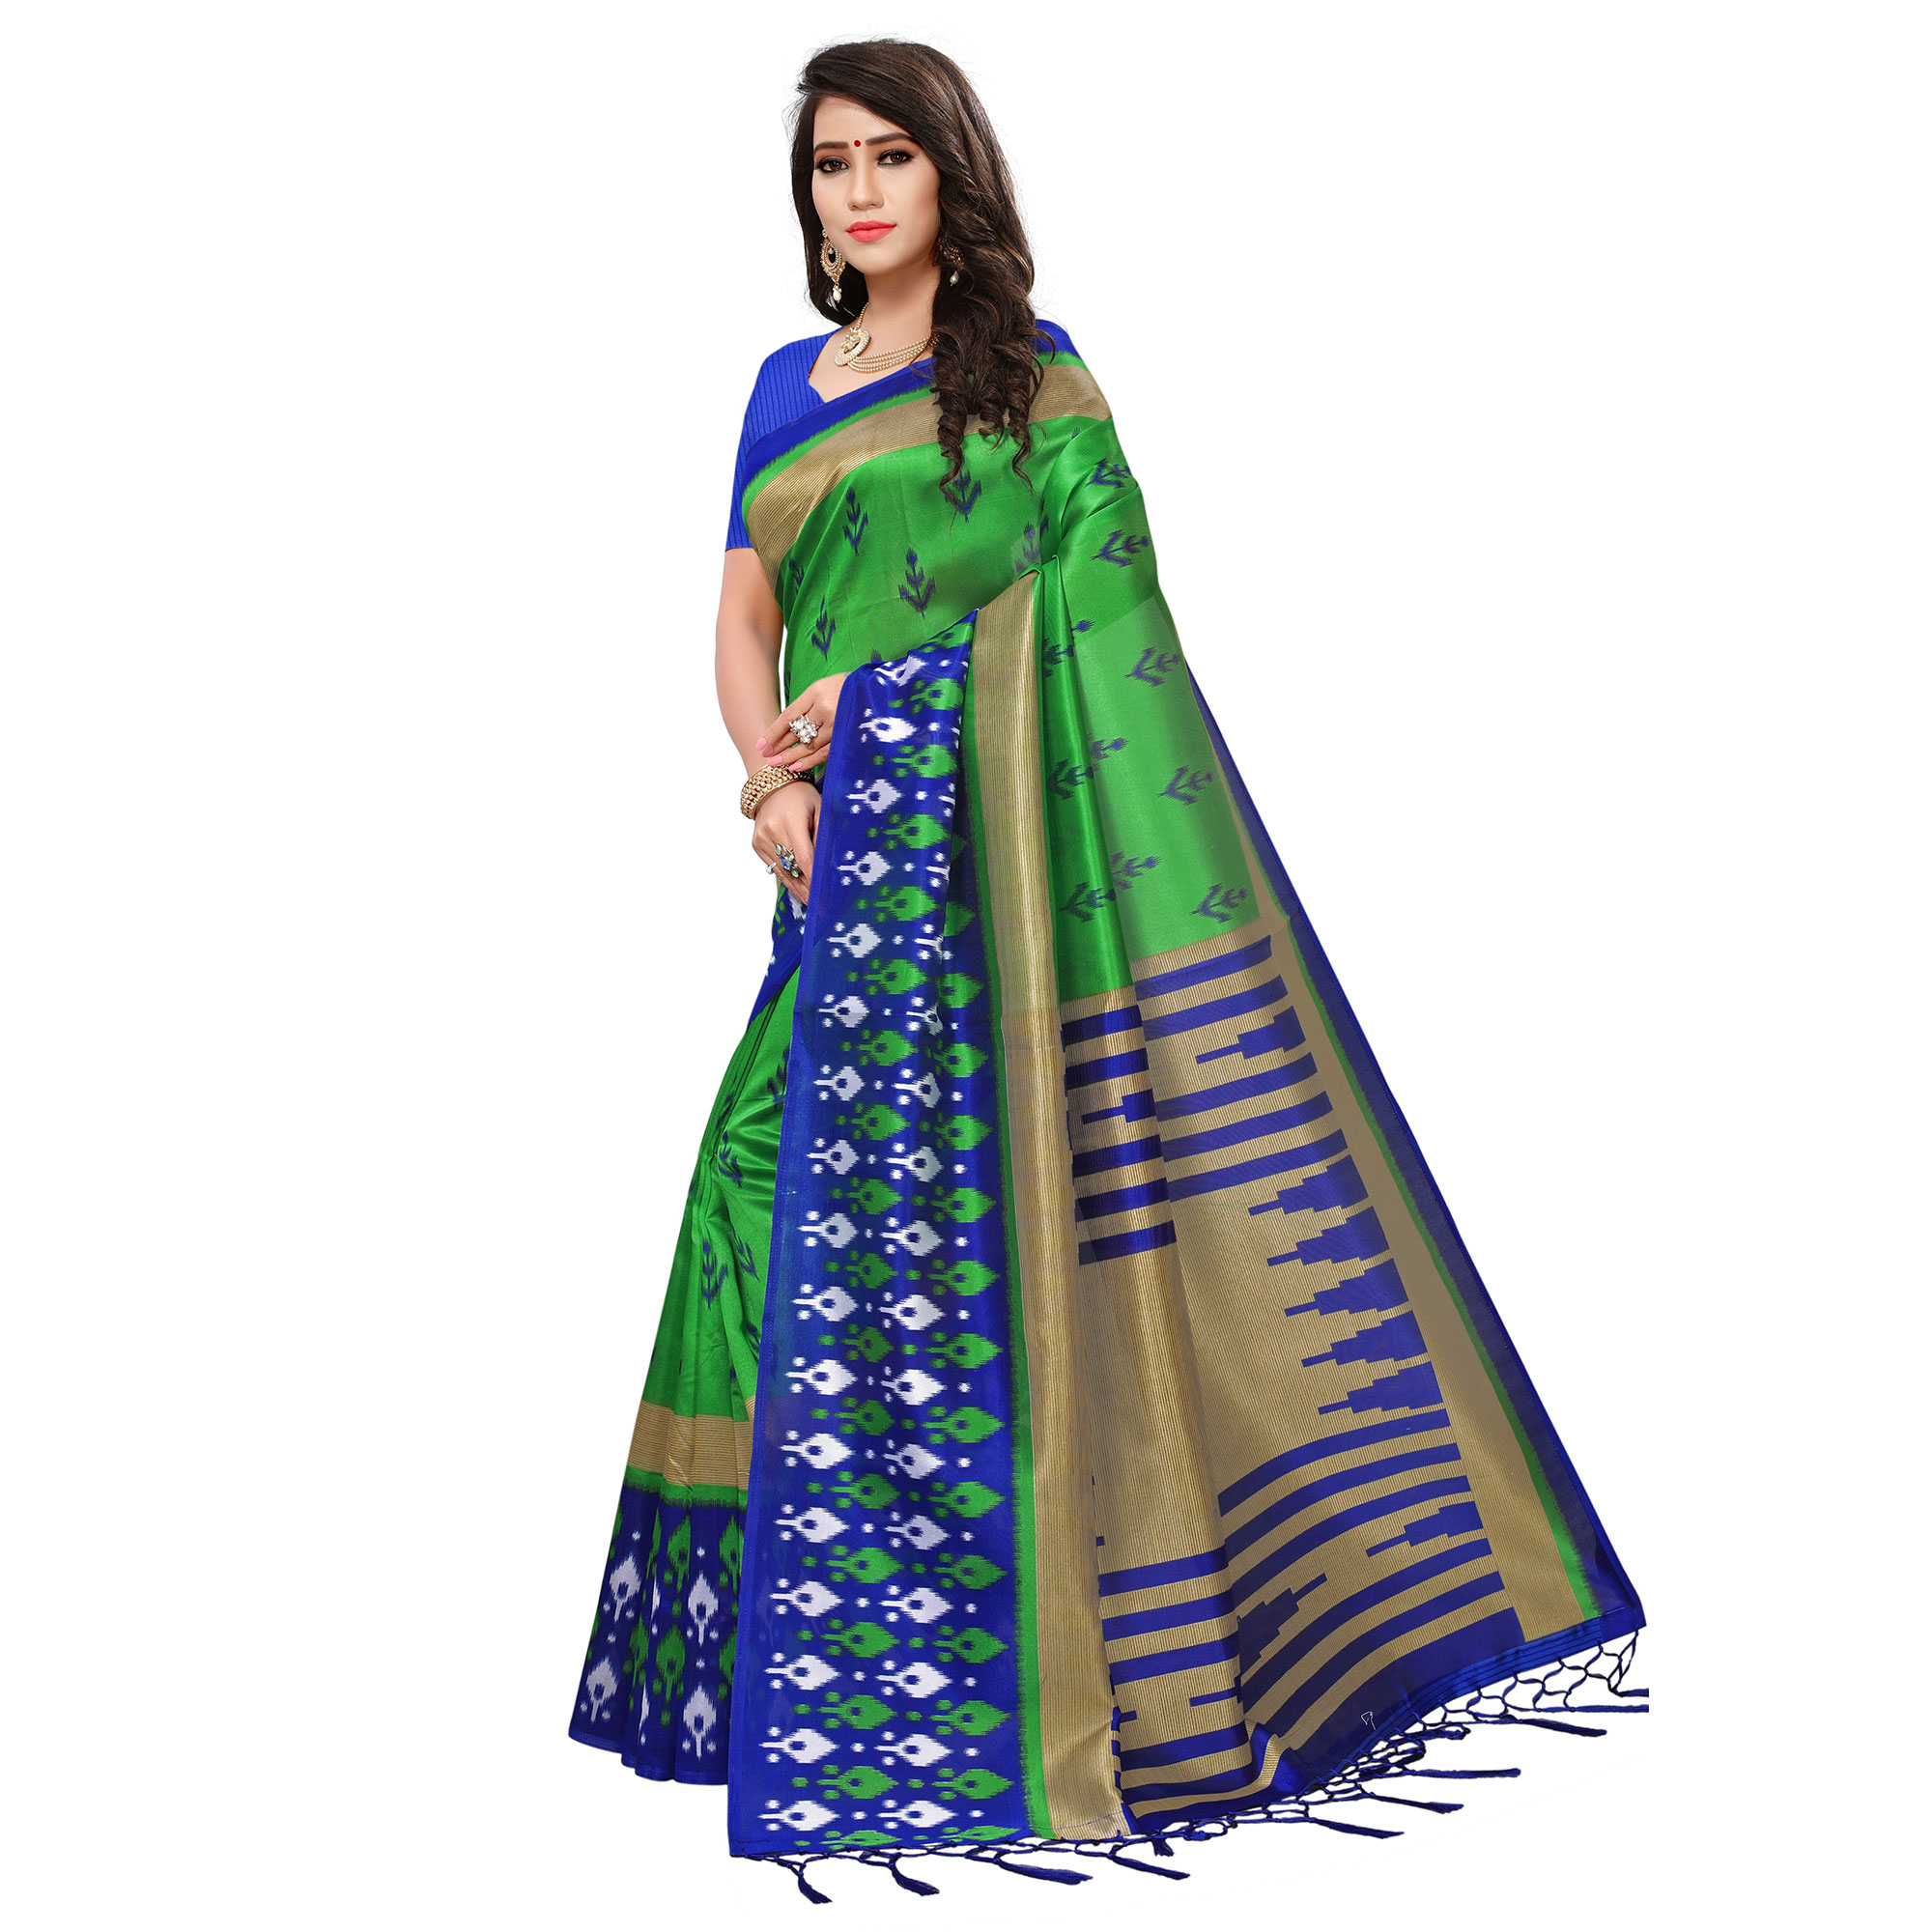 Refreshing Green-Blue Colored Printed Festive Wear Mysore Art Silk Saree